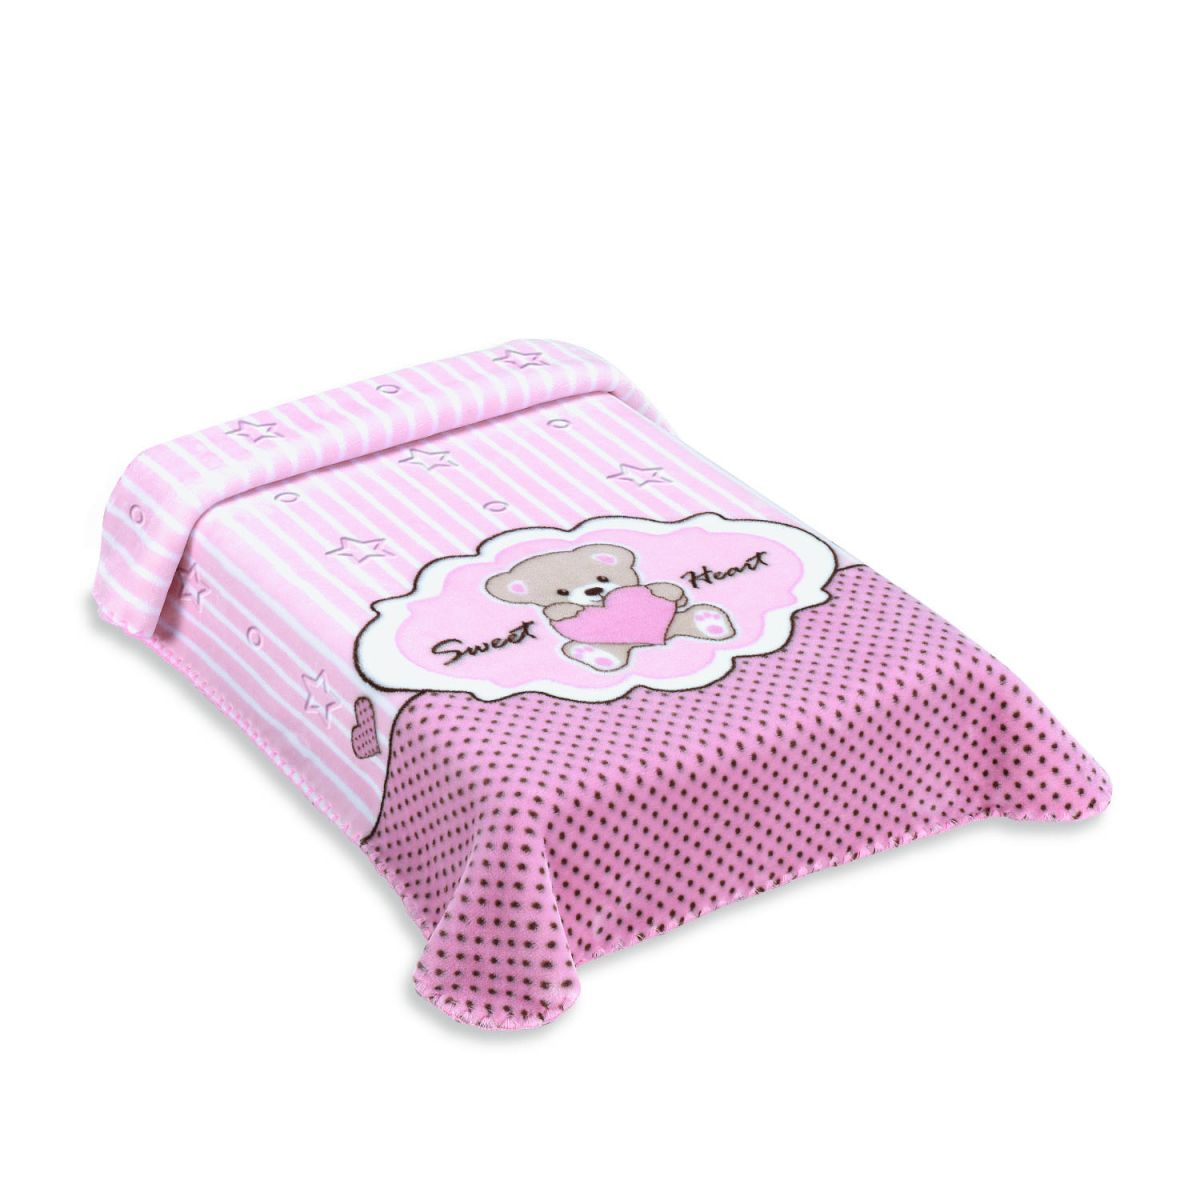 COBERTOR EXCLUSIVE ESTAMPADO SWEET